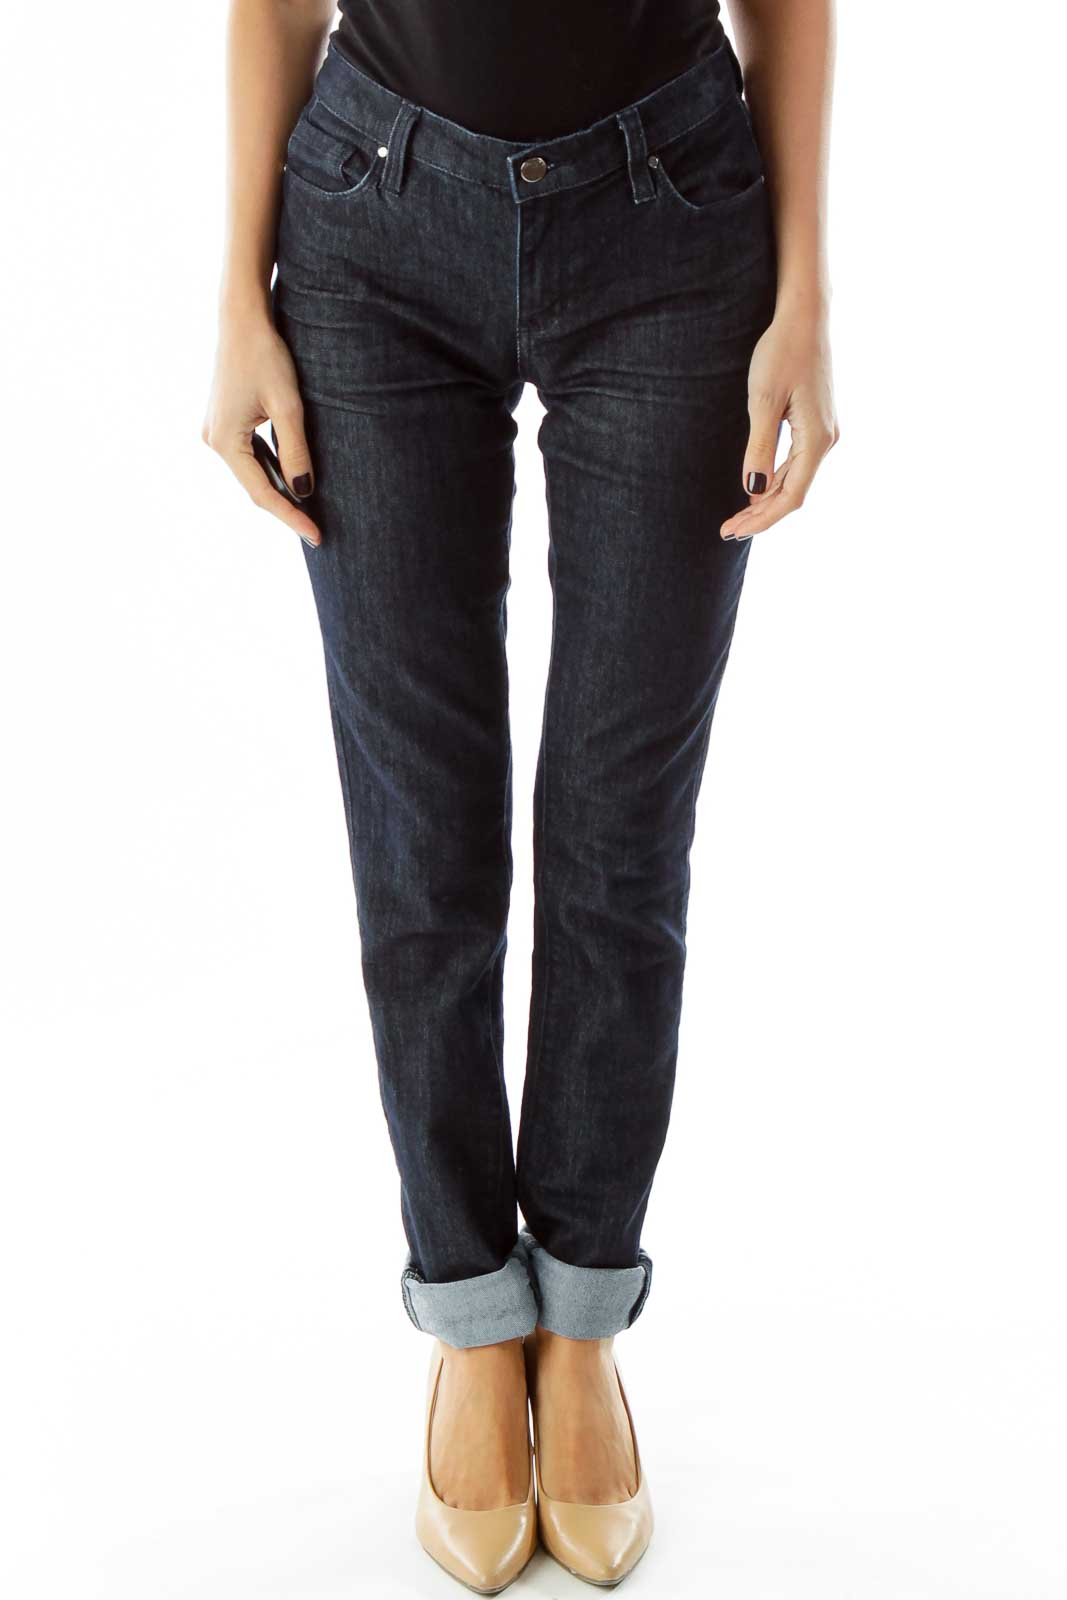 Navy Denim Skinny Jeans